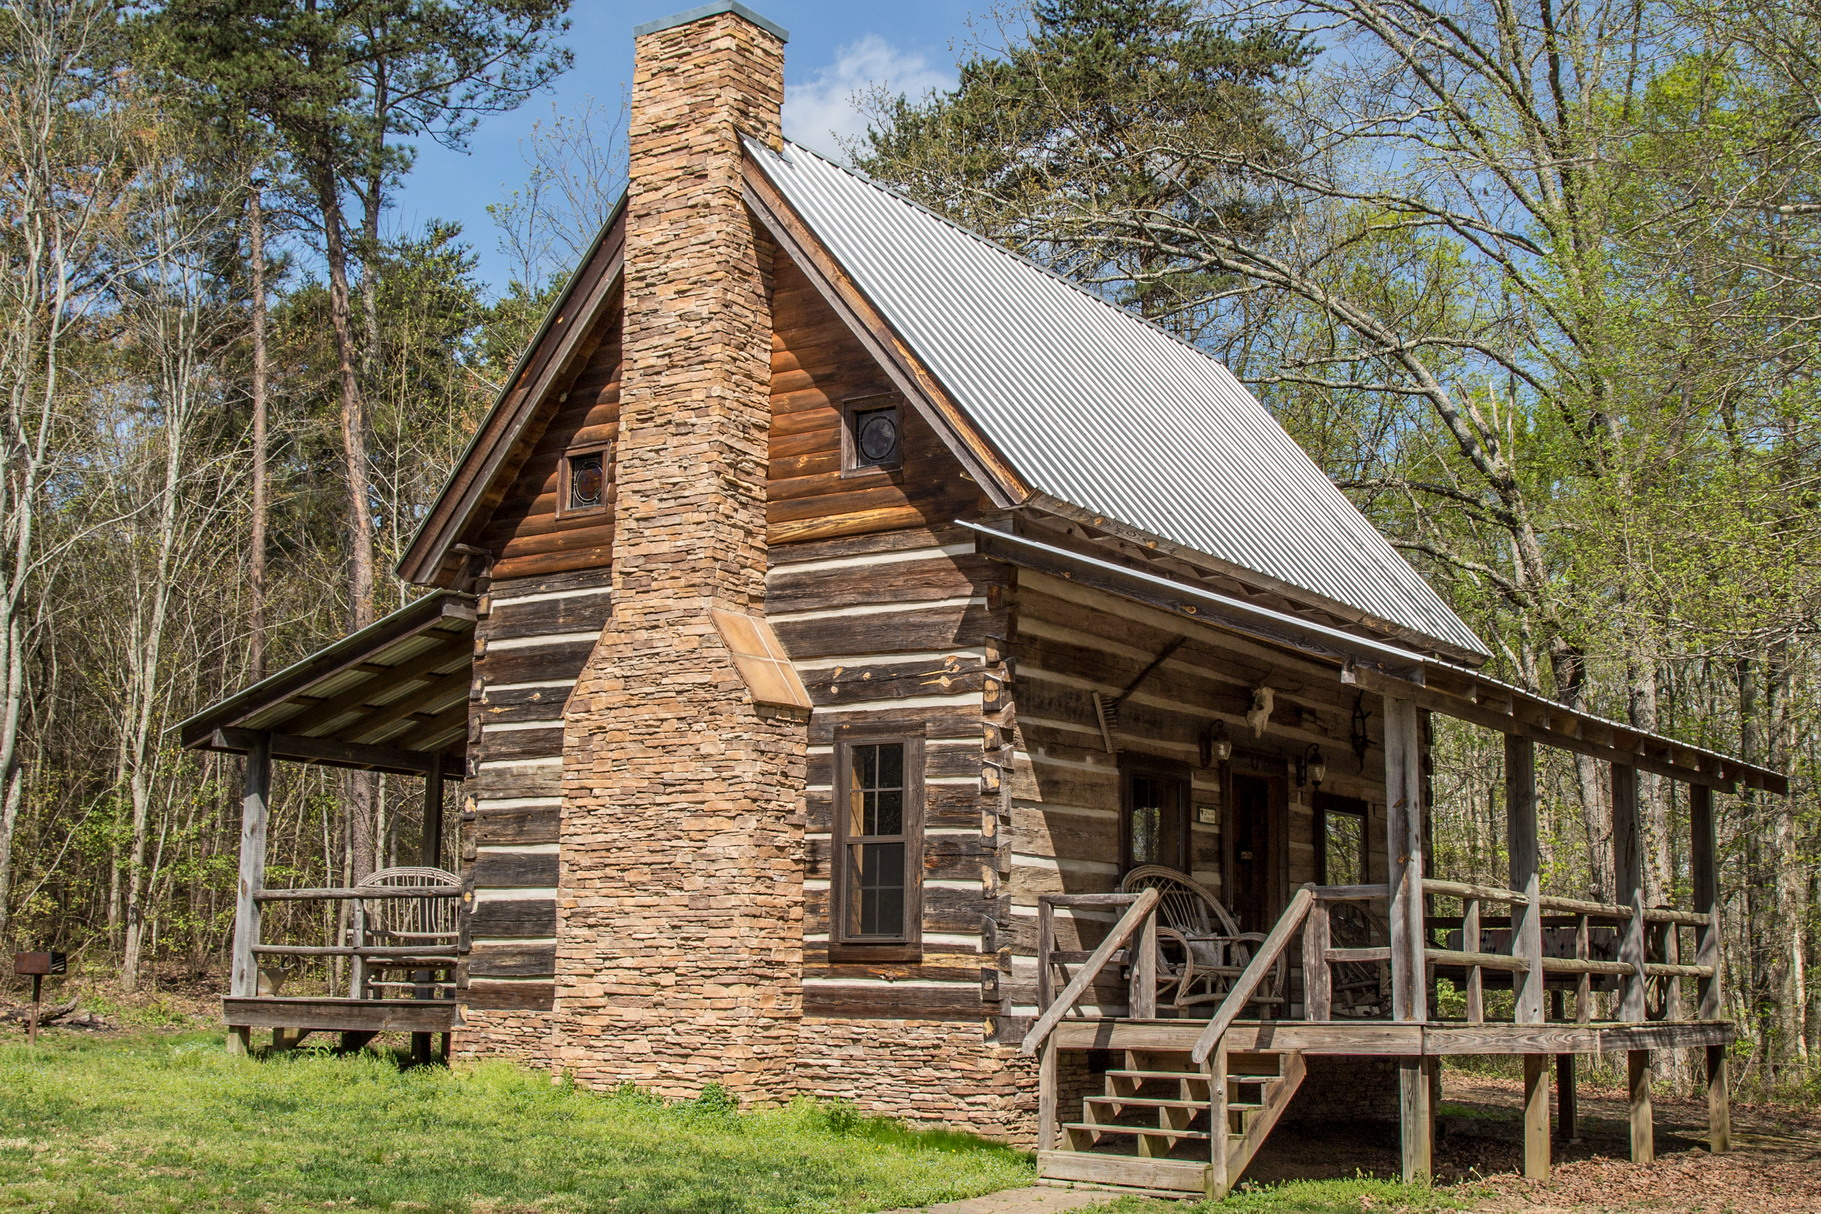 montana log cabins acres on goat homes cabin alabama search sale pictures in mountain for